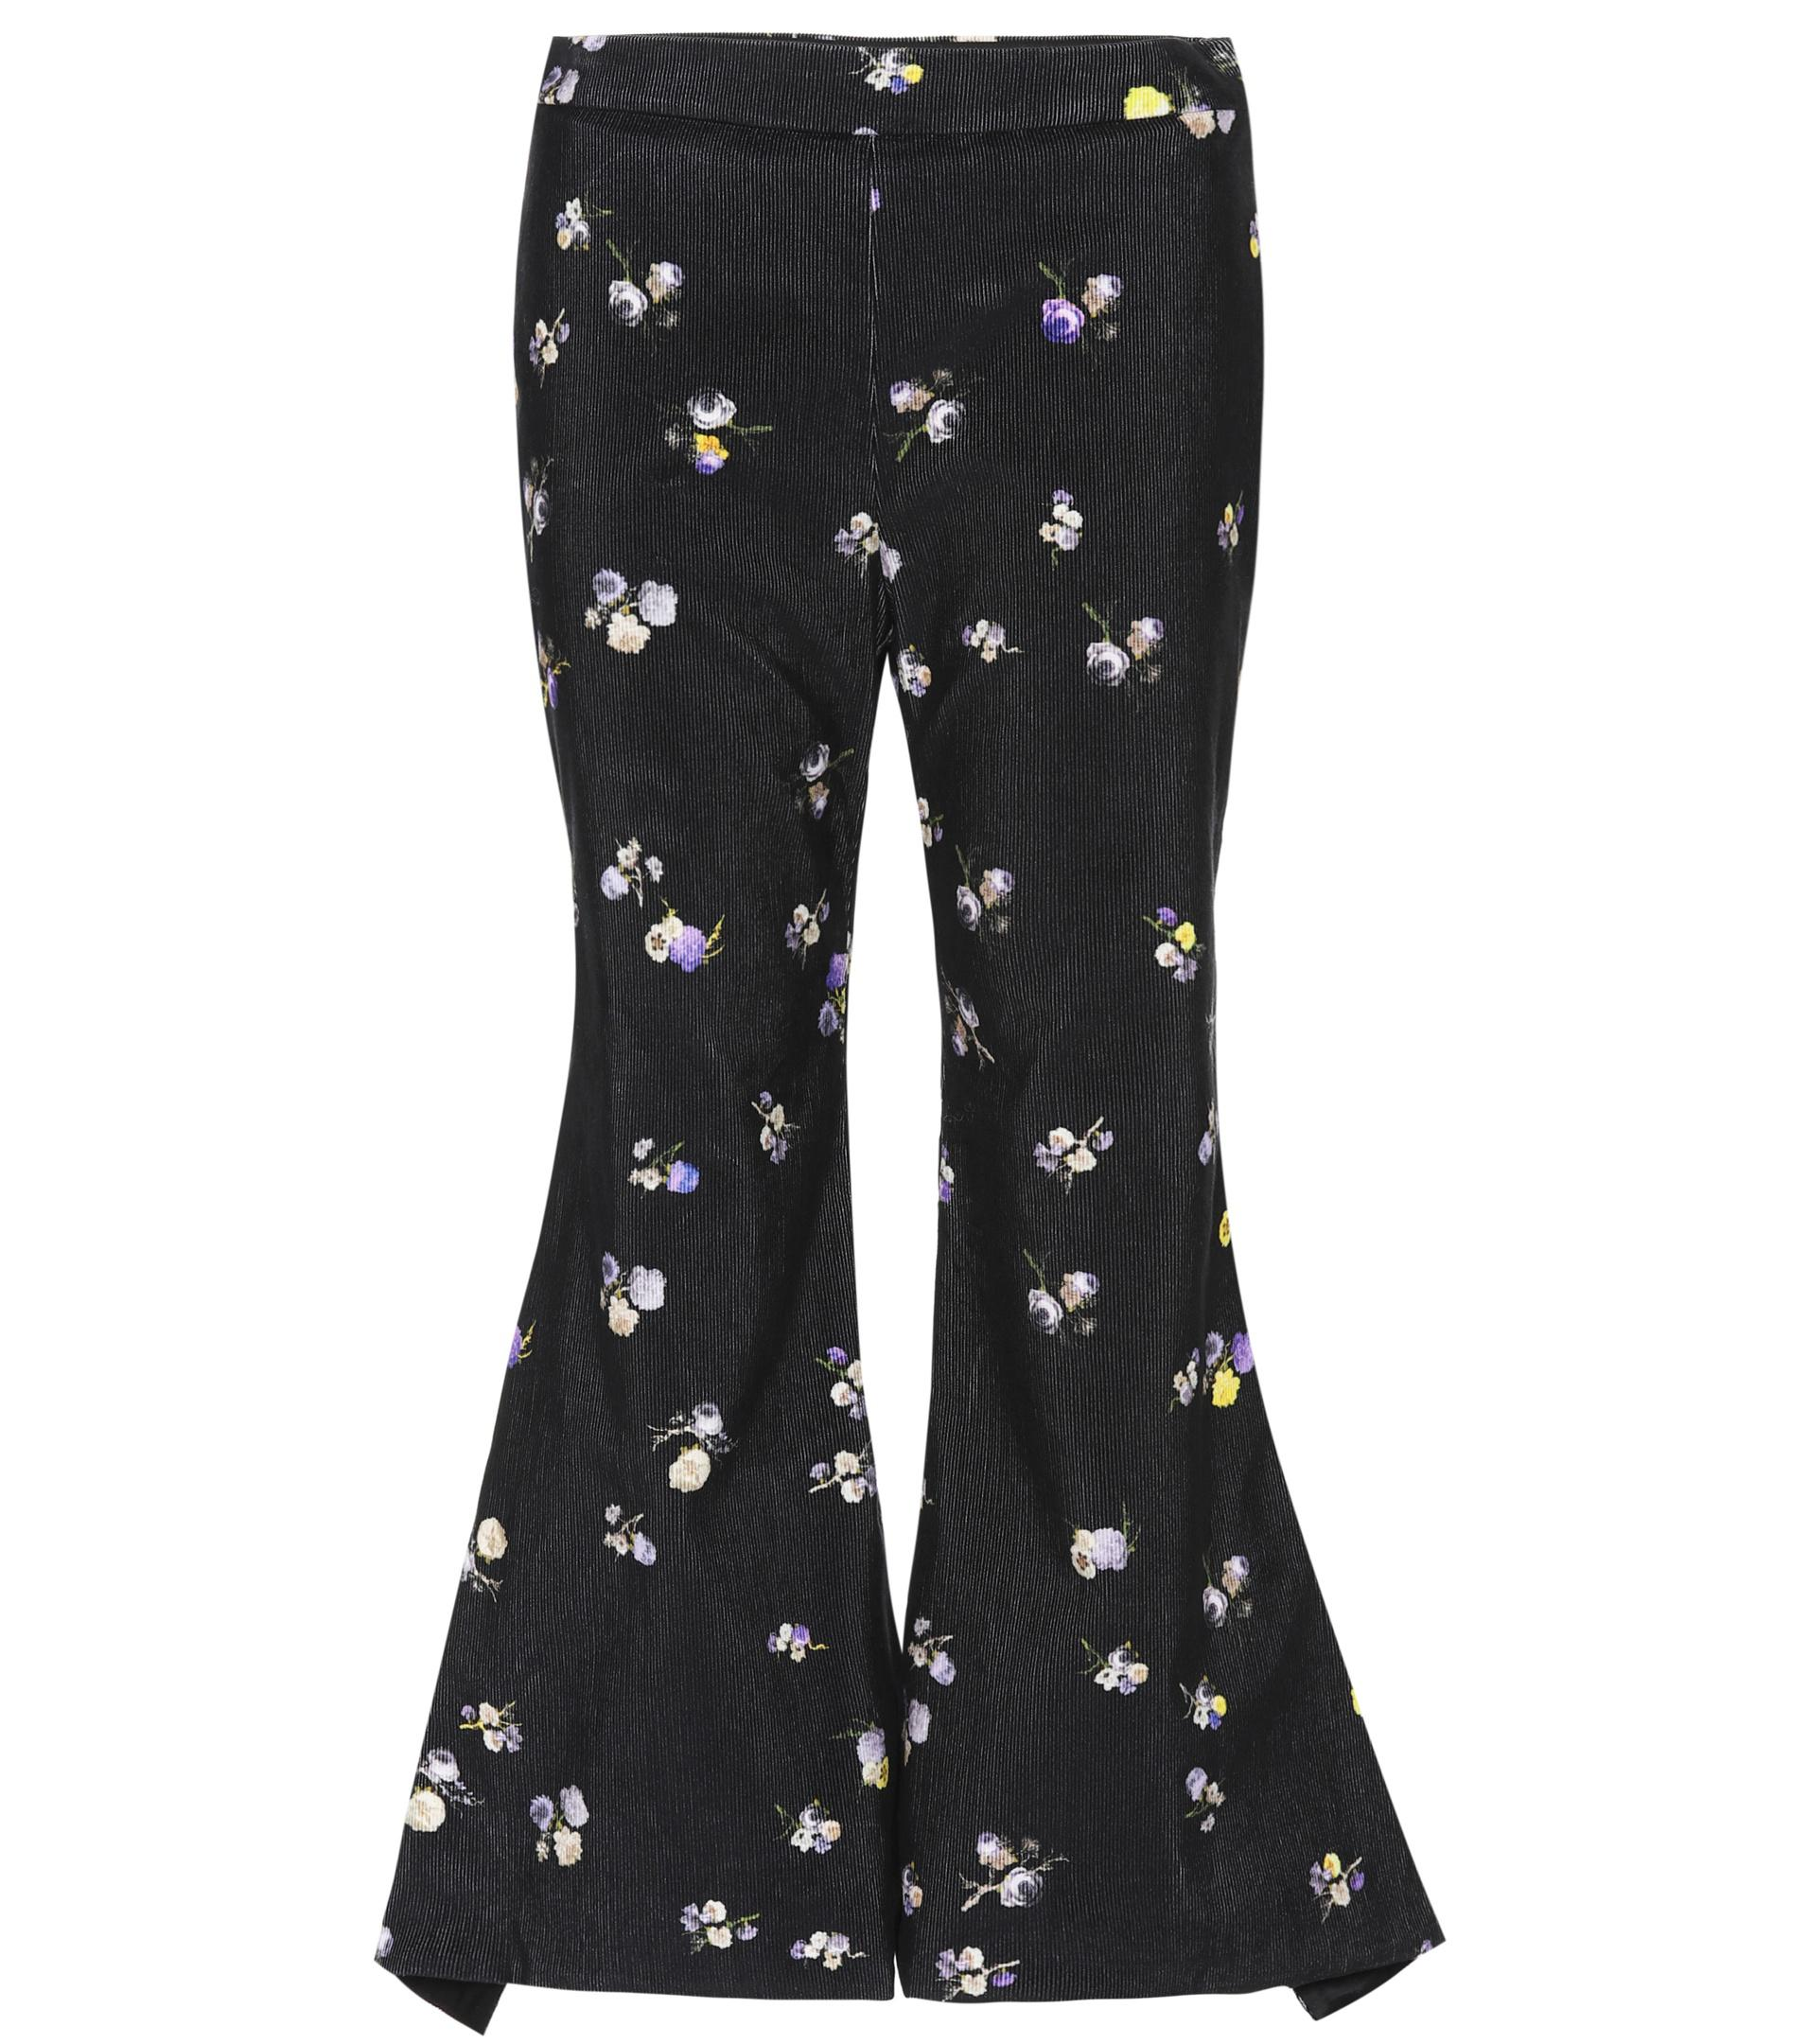 Tyme corduroy trousers Acne Studios Free Shipping With Credit Card Outlet Manchester ZzF9F3agr0